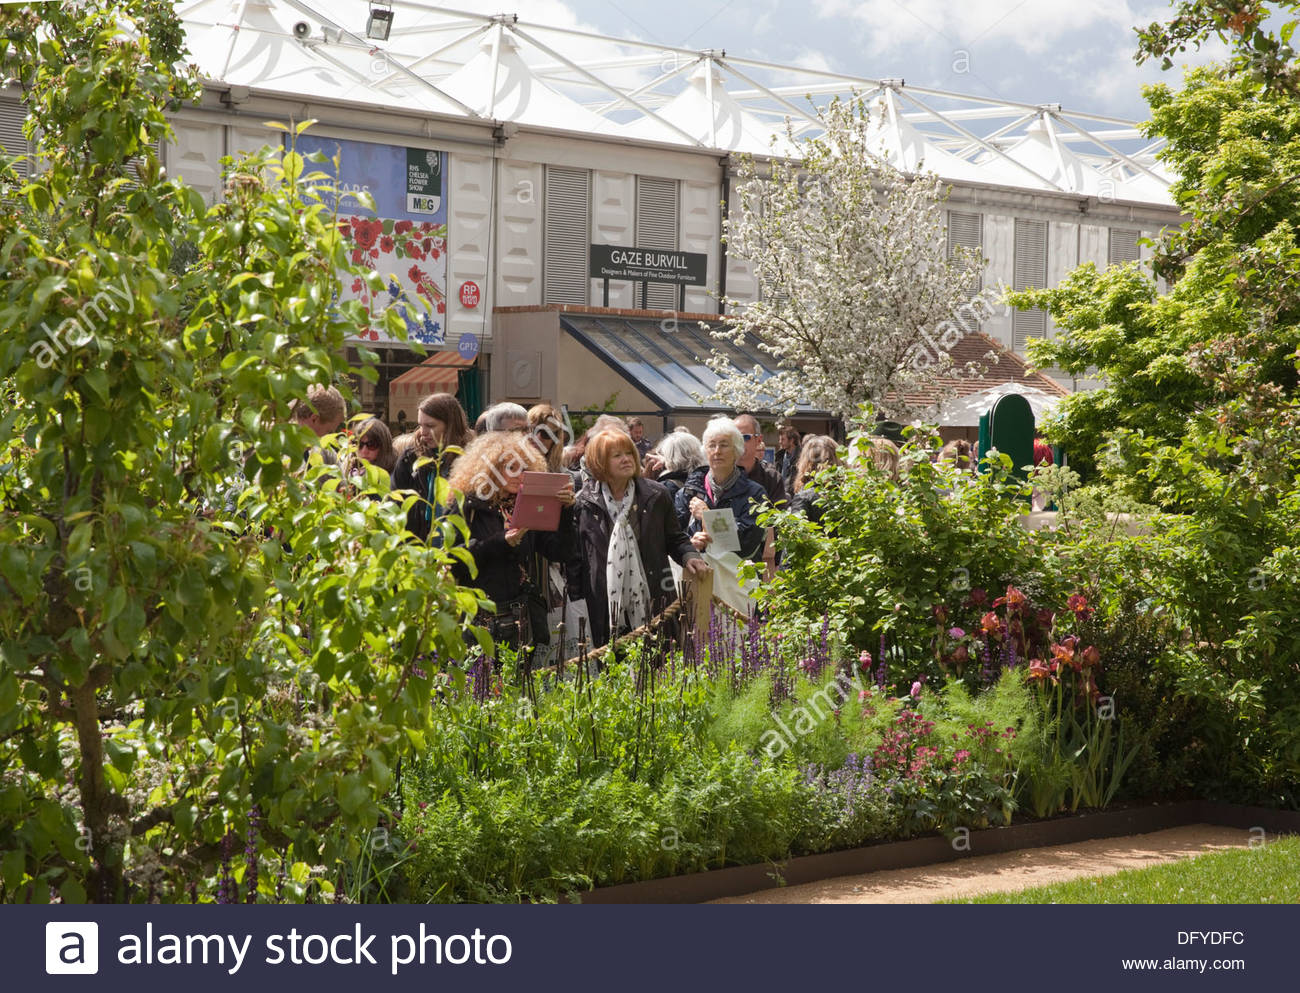 Visitors To The RHS Chelsea Flower Show Looking At A Garden On Main Avenue.  The Homebase Garden, Designer Adam Frost